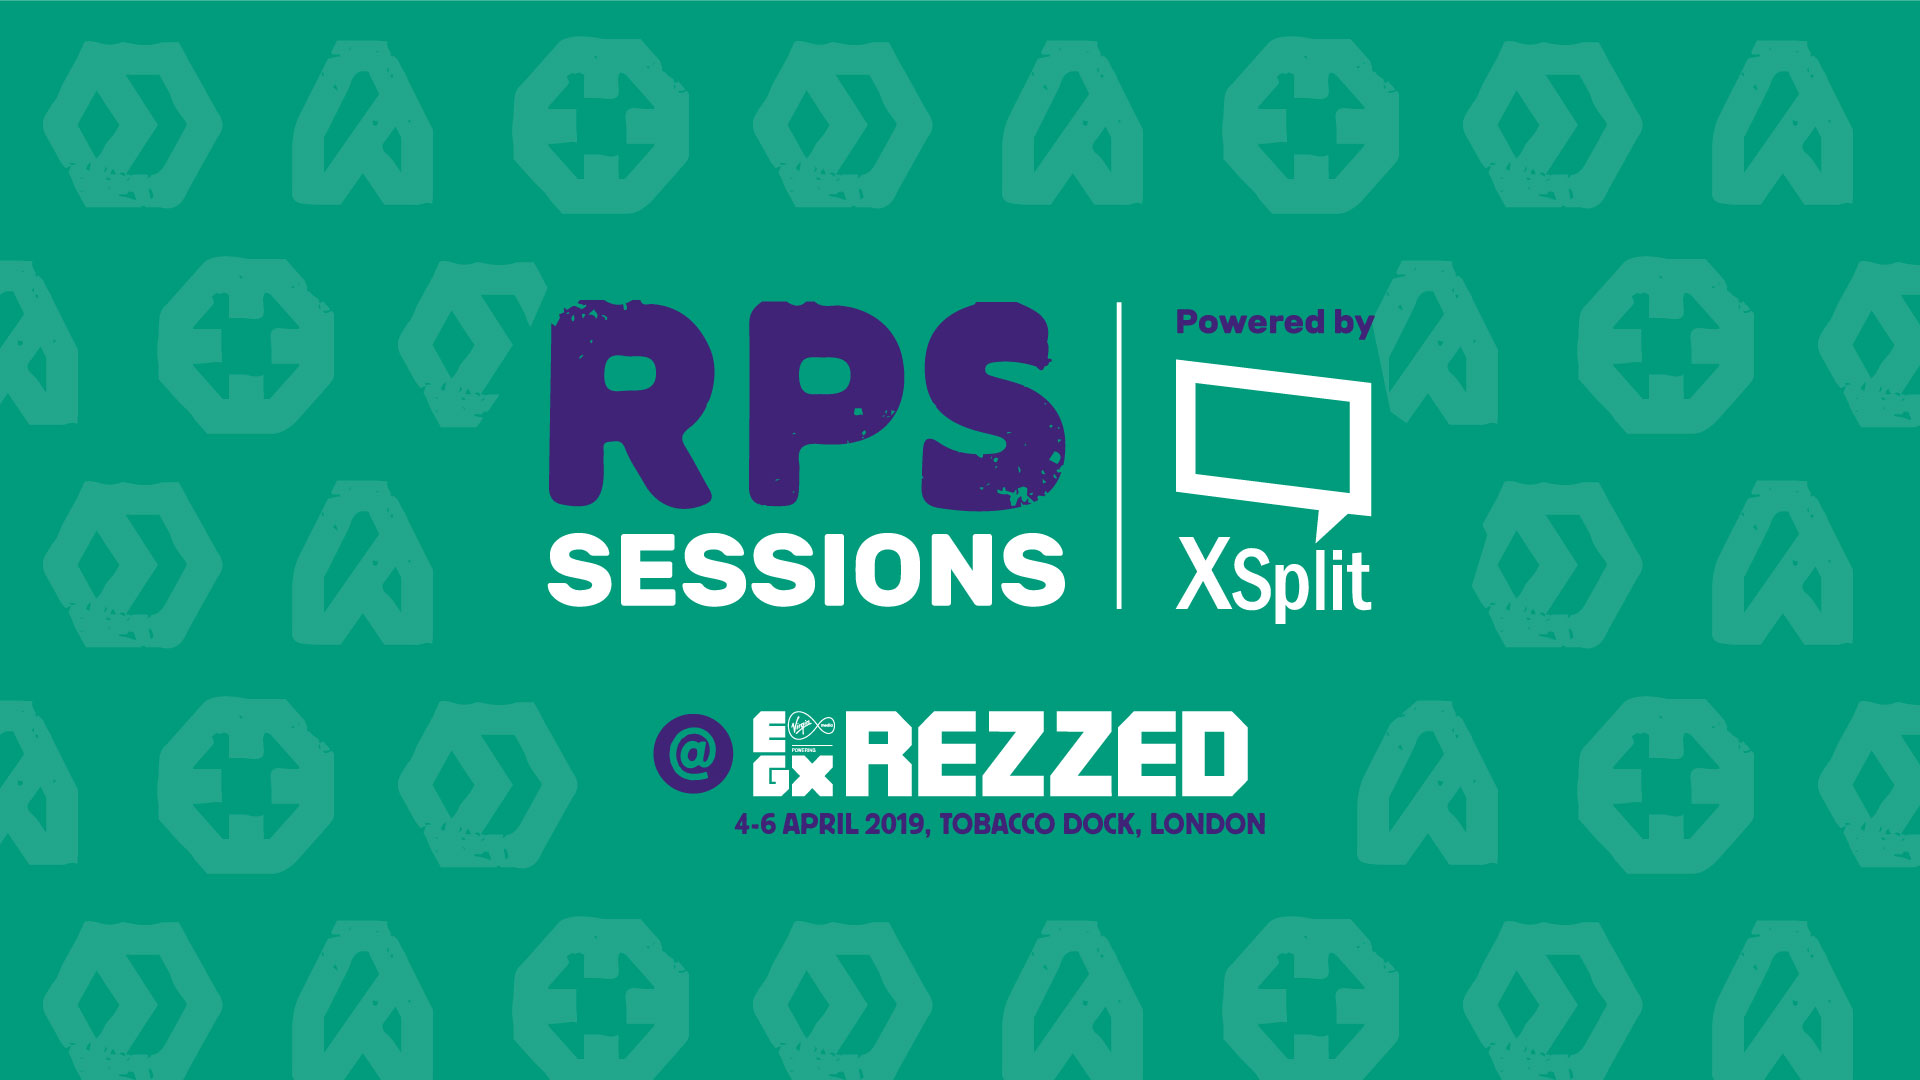 XSplit Powers the RPS Sessions at EGX 2019